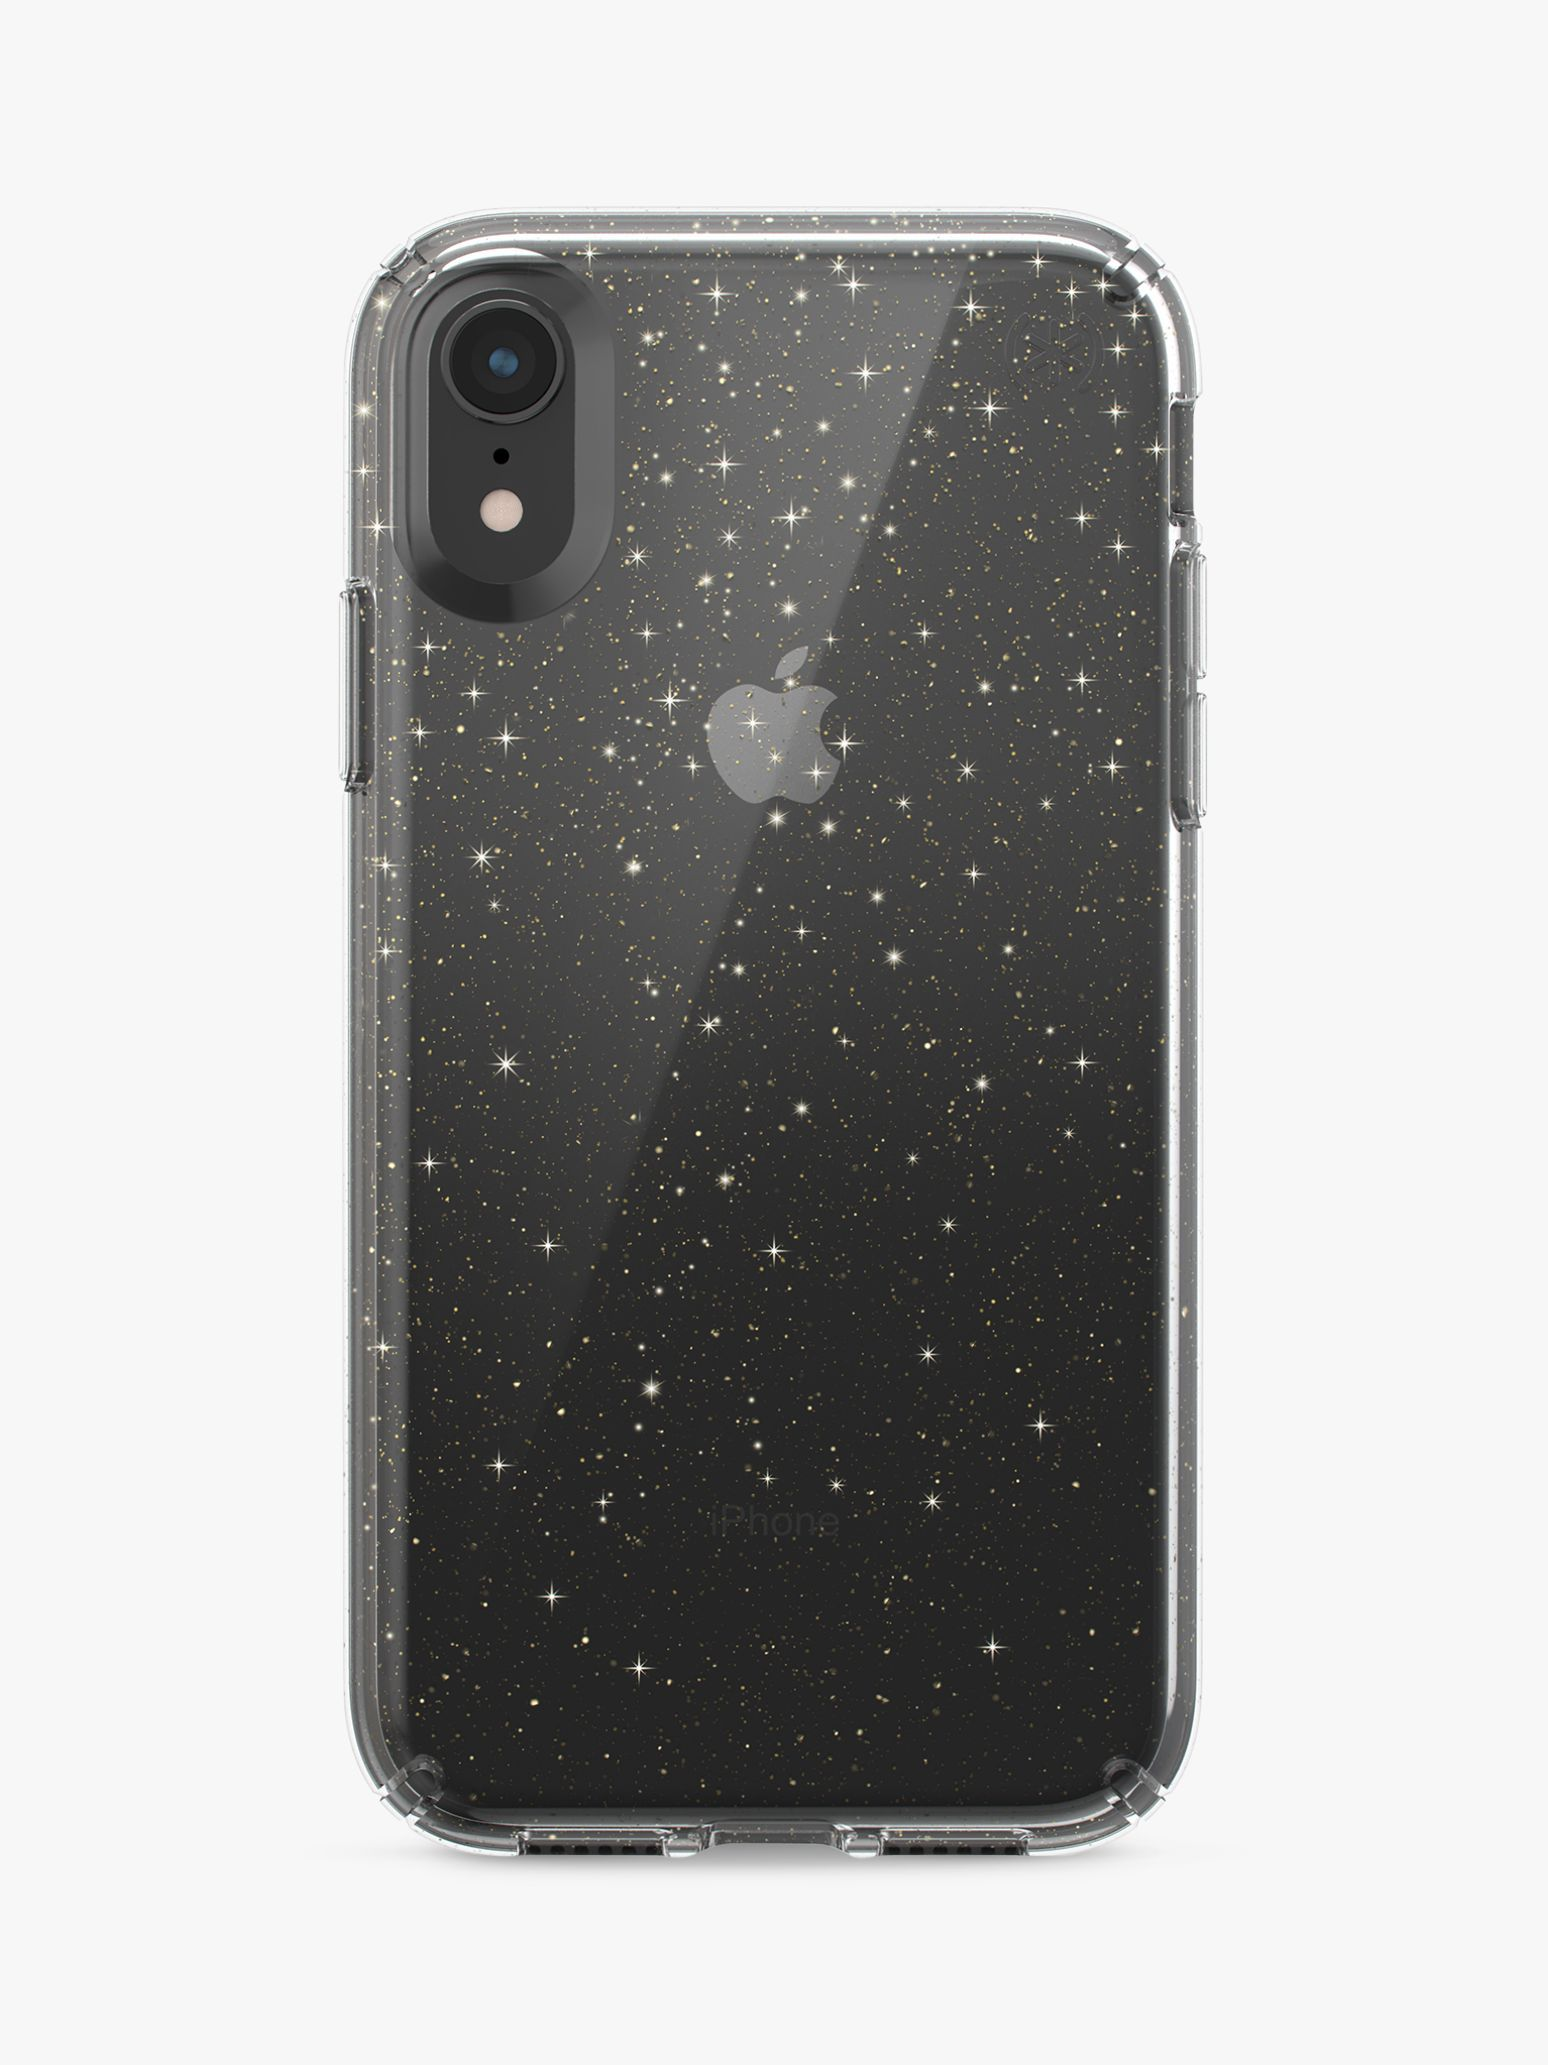 List of Good Black Wallpaper Iphone Glitter Products for iPhone 11 Pro 2020